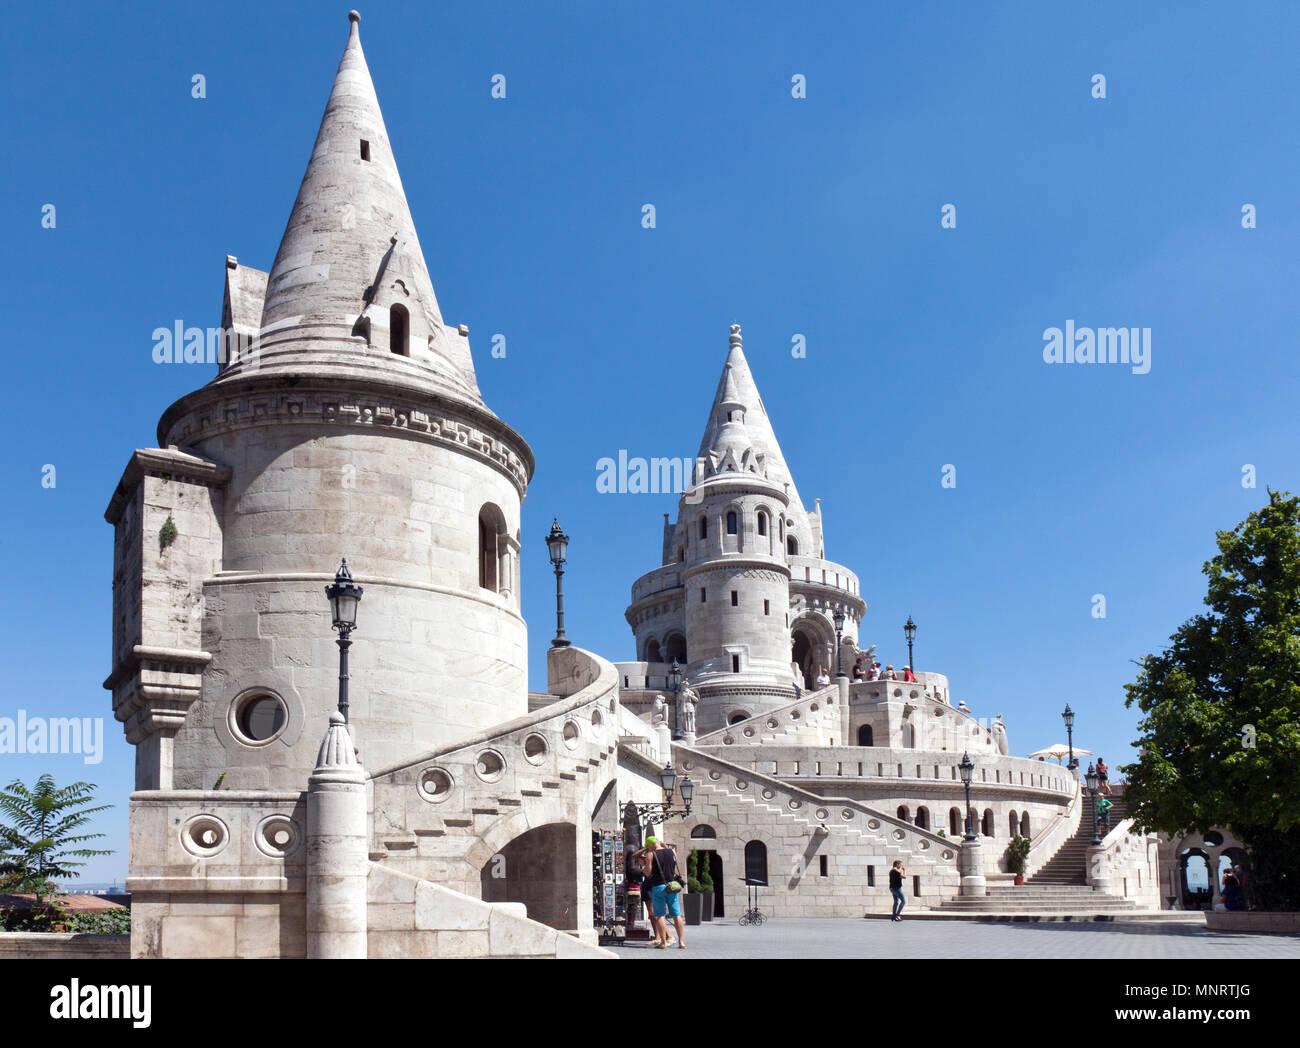 Fisherman's Bastion, Buda Hill, Budapest, Hungary. - Stock Image